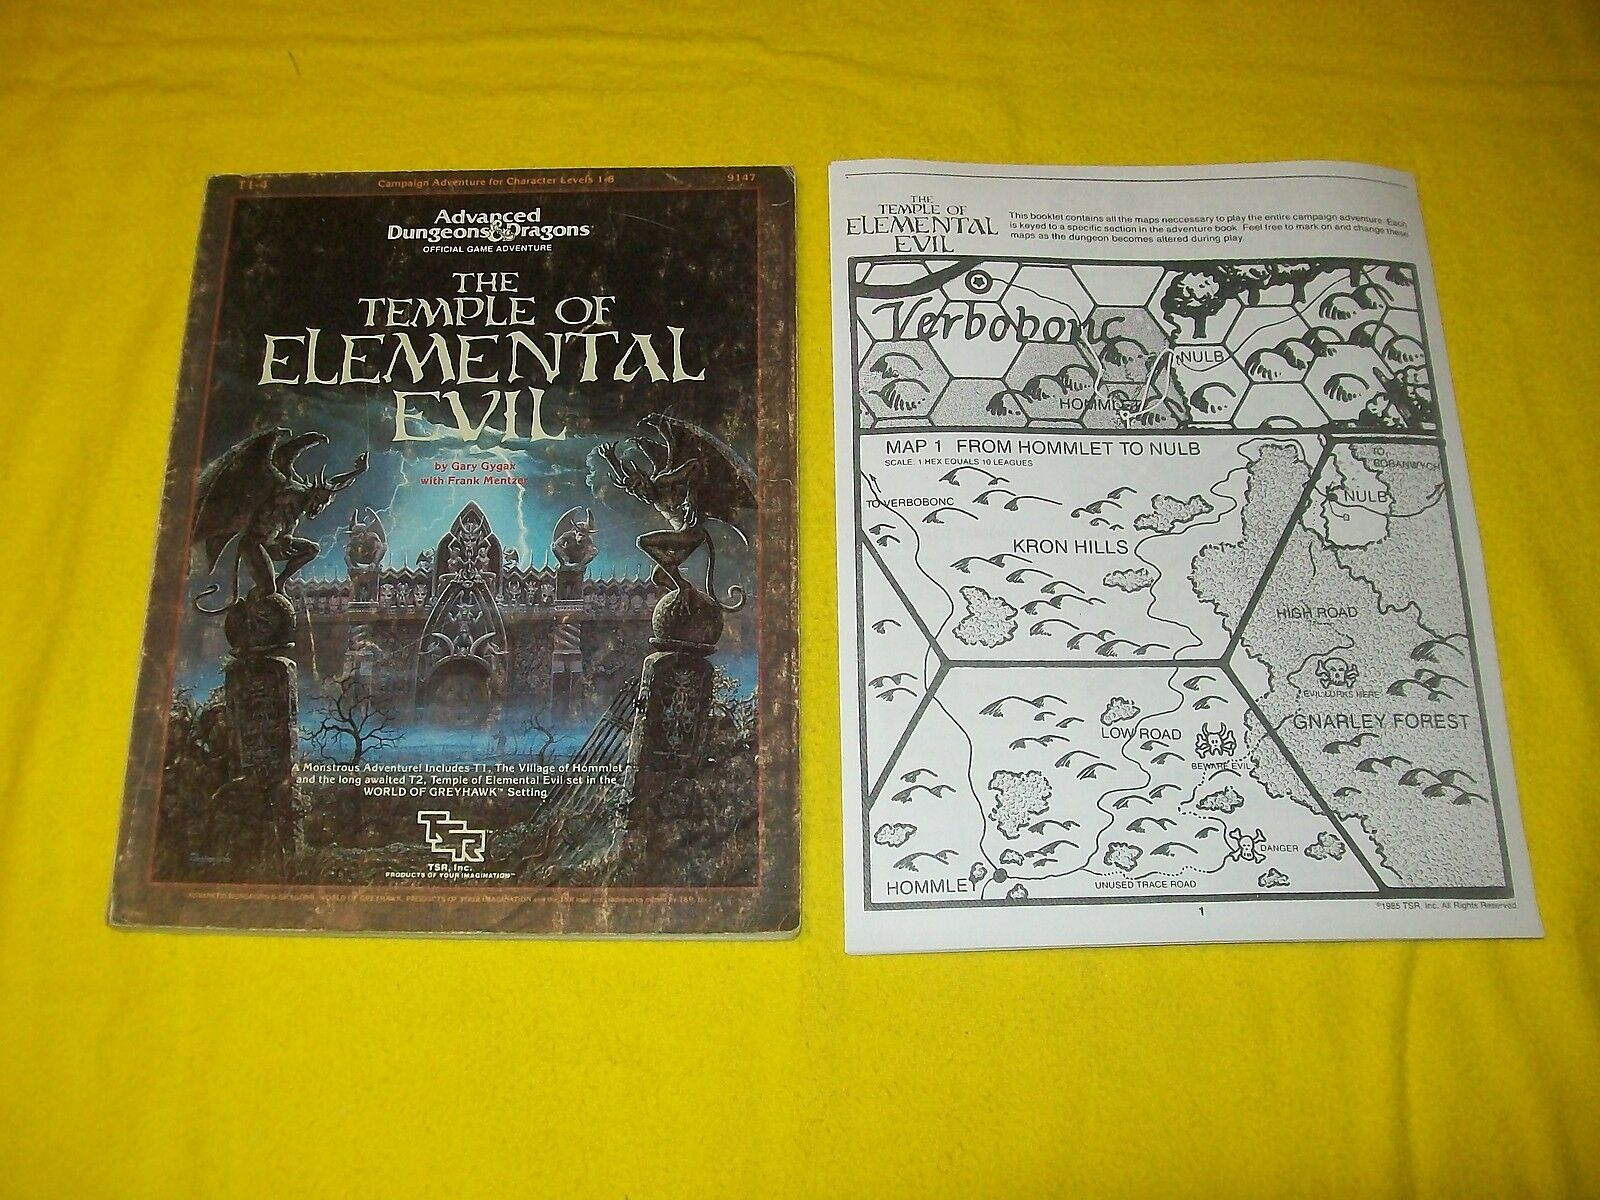 T1-4 THE TEMPLE OF ELEMENTAL EVIL DUNGEONS & DRAGONS AD&D TSR 9147 6 SUPERMODULE